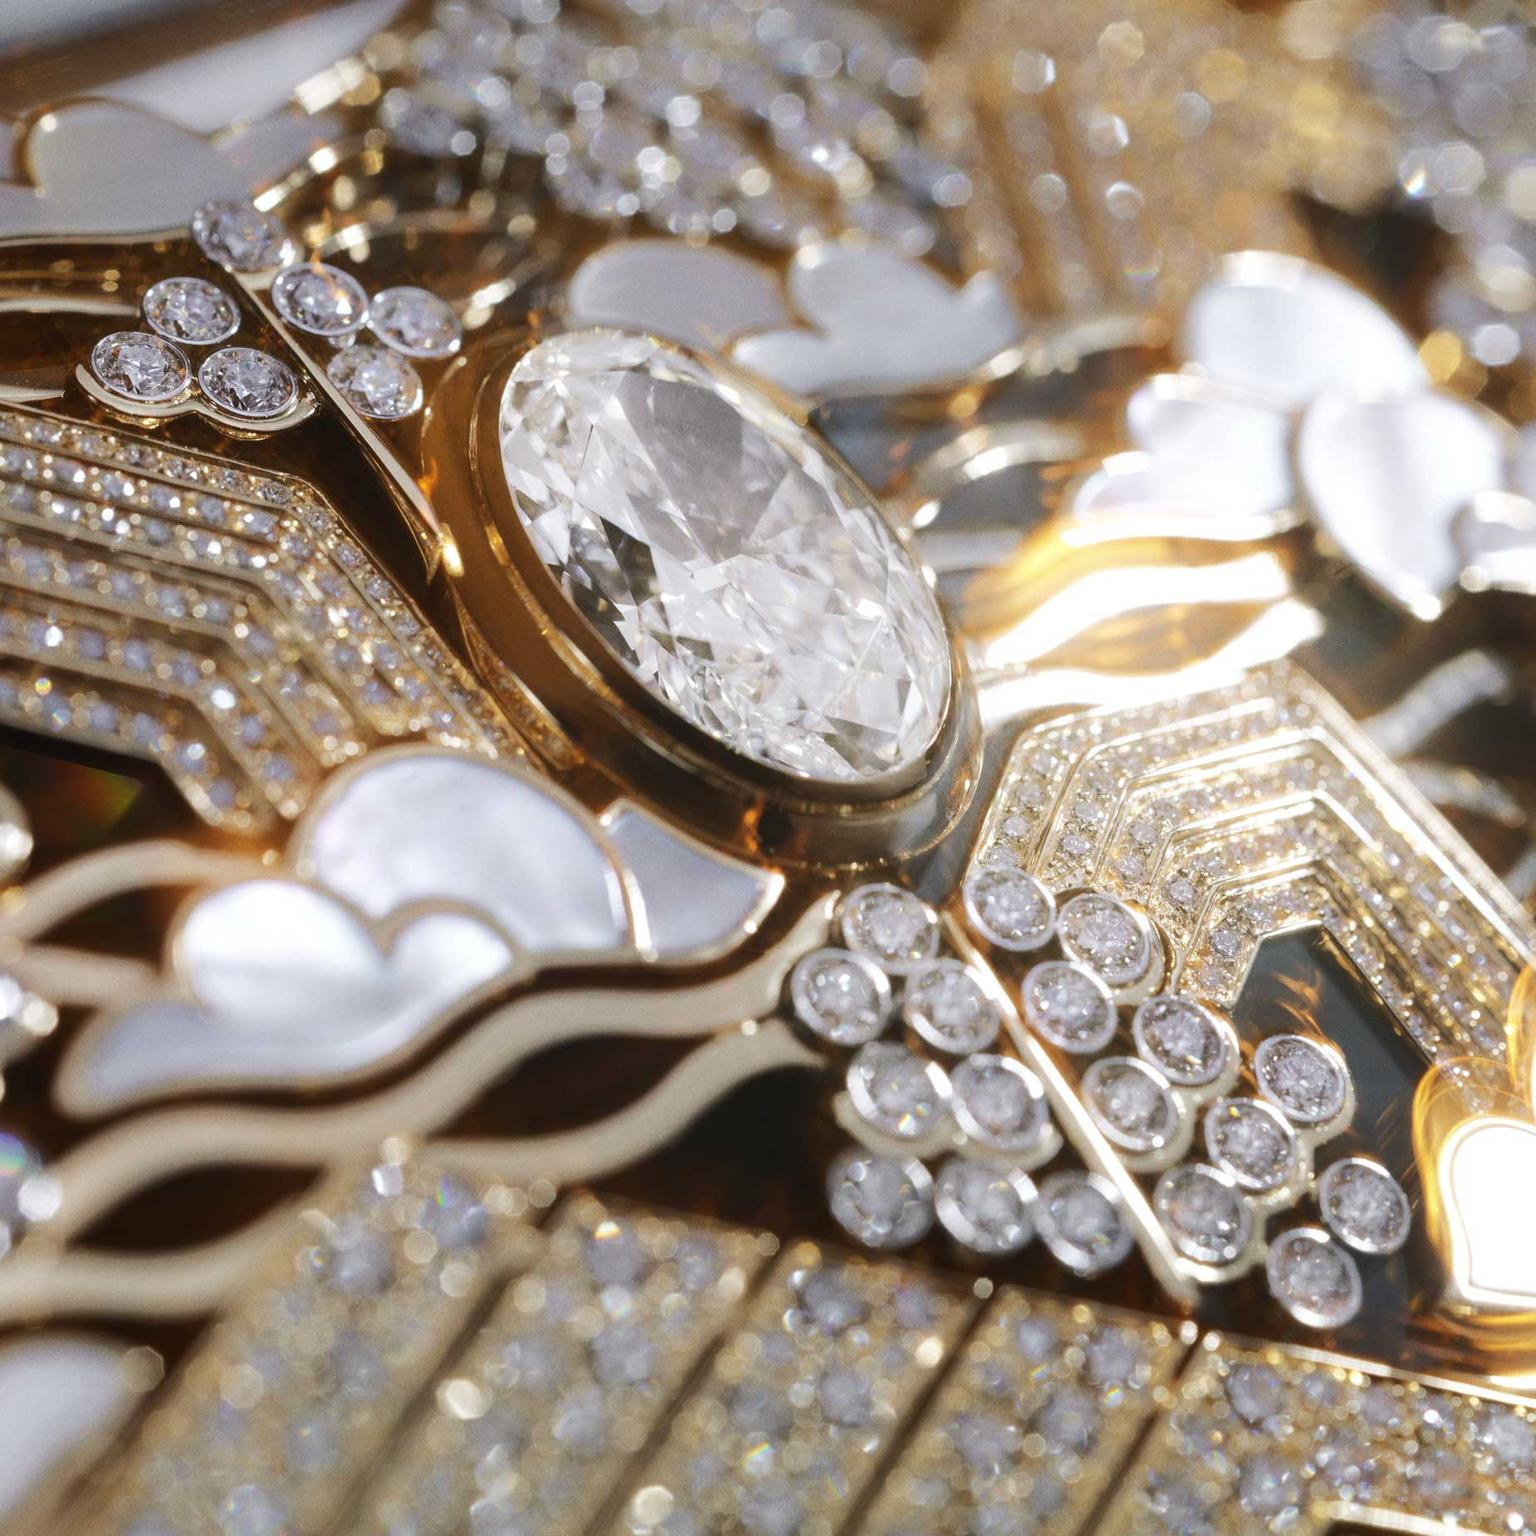 Detail of Chanel Coromandel Horizon Lointain necklace